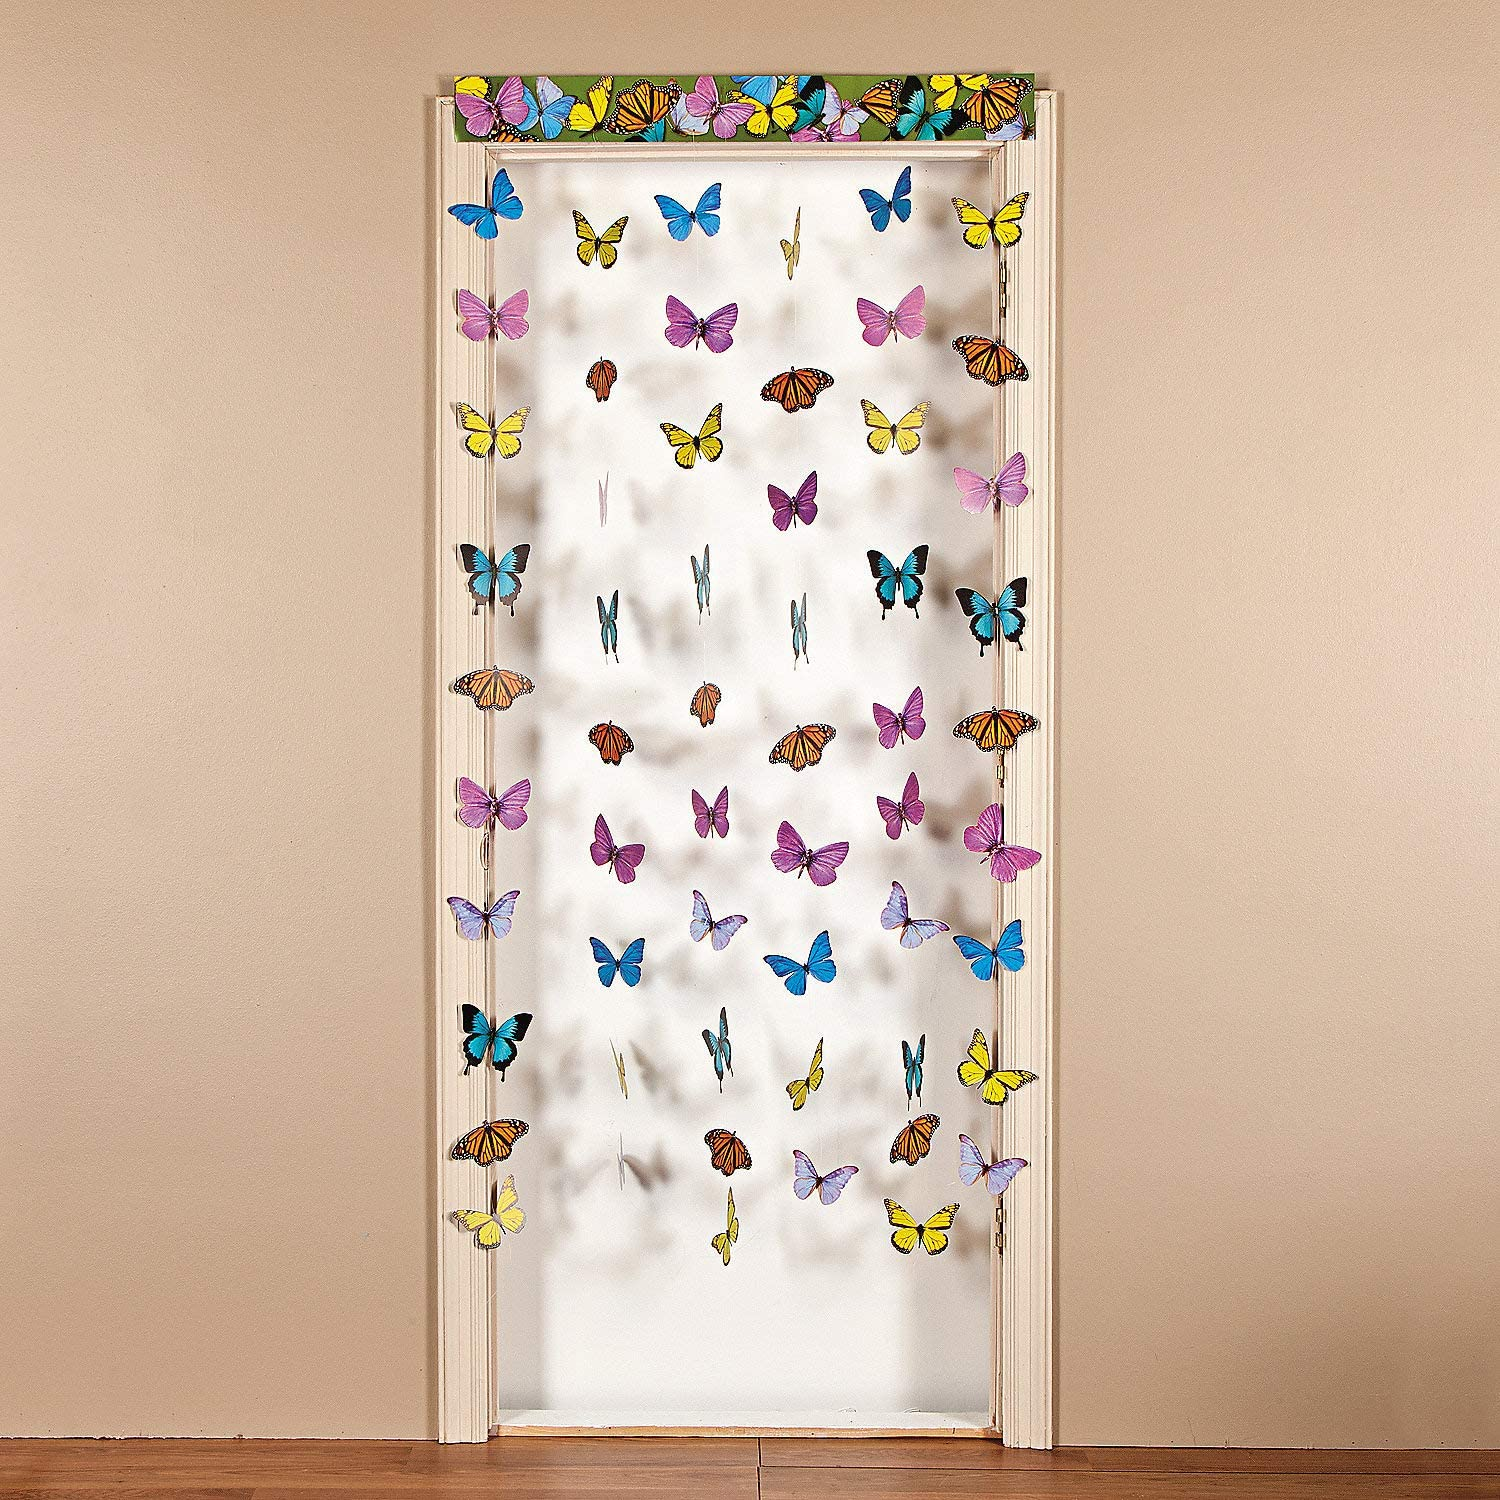 Butterfly Hanging Doorway Curtain (6 feet long) Classroom and Party Decor